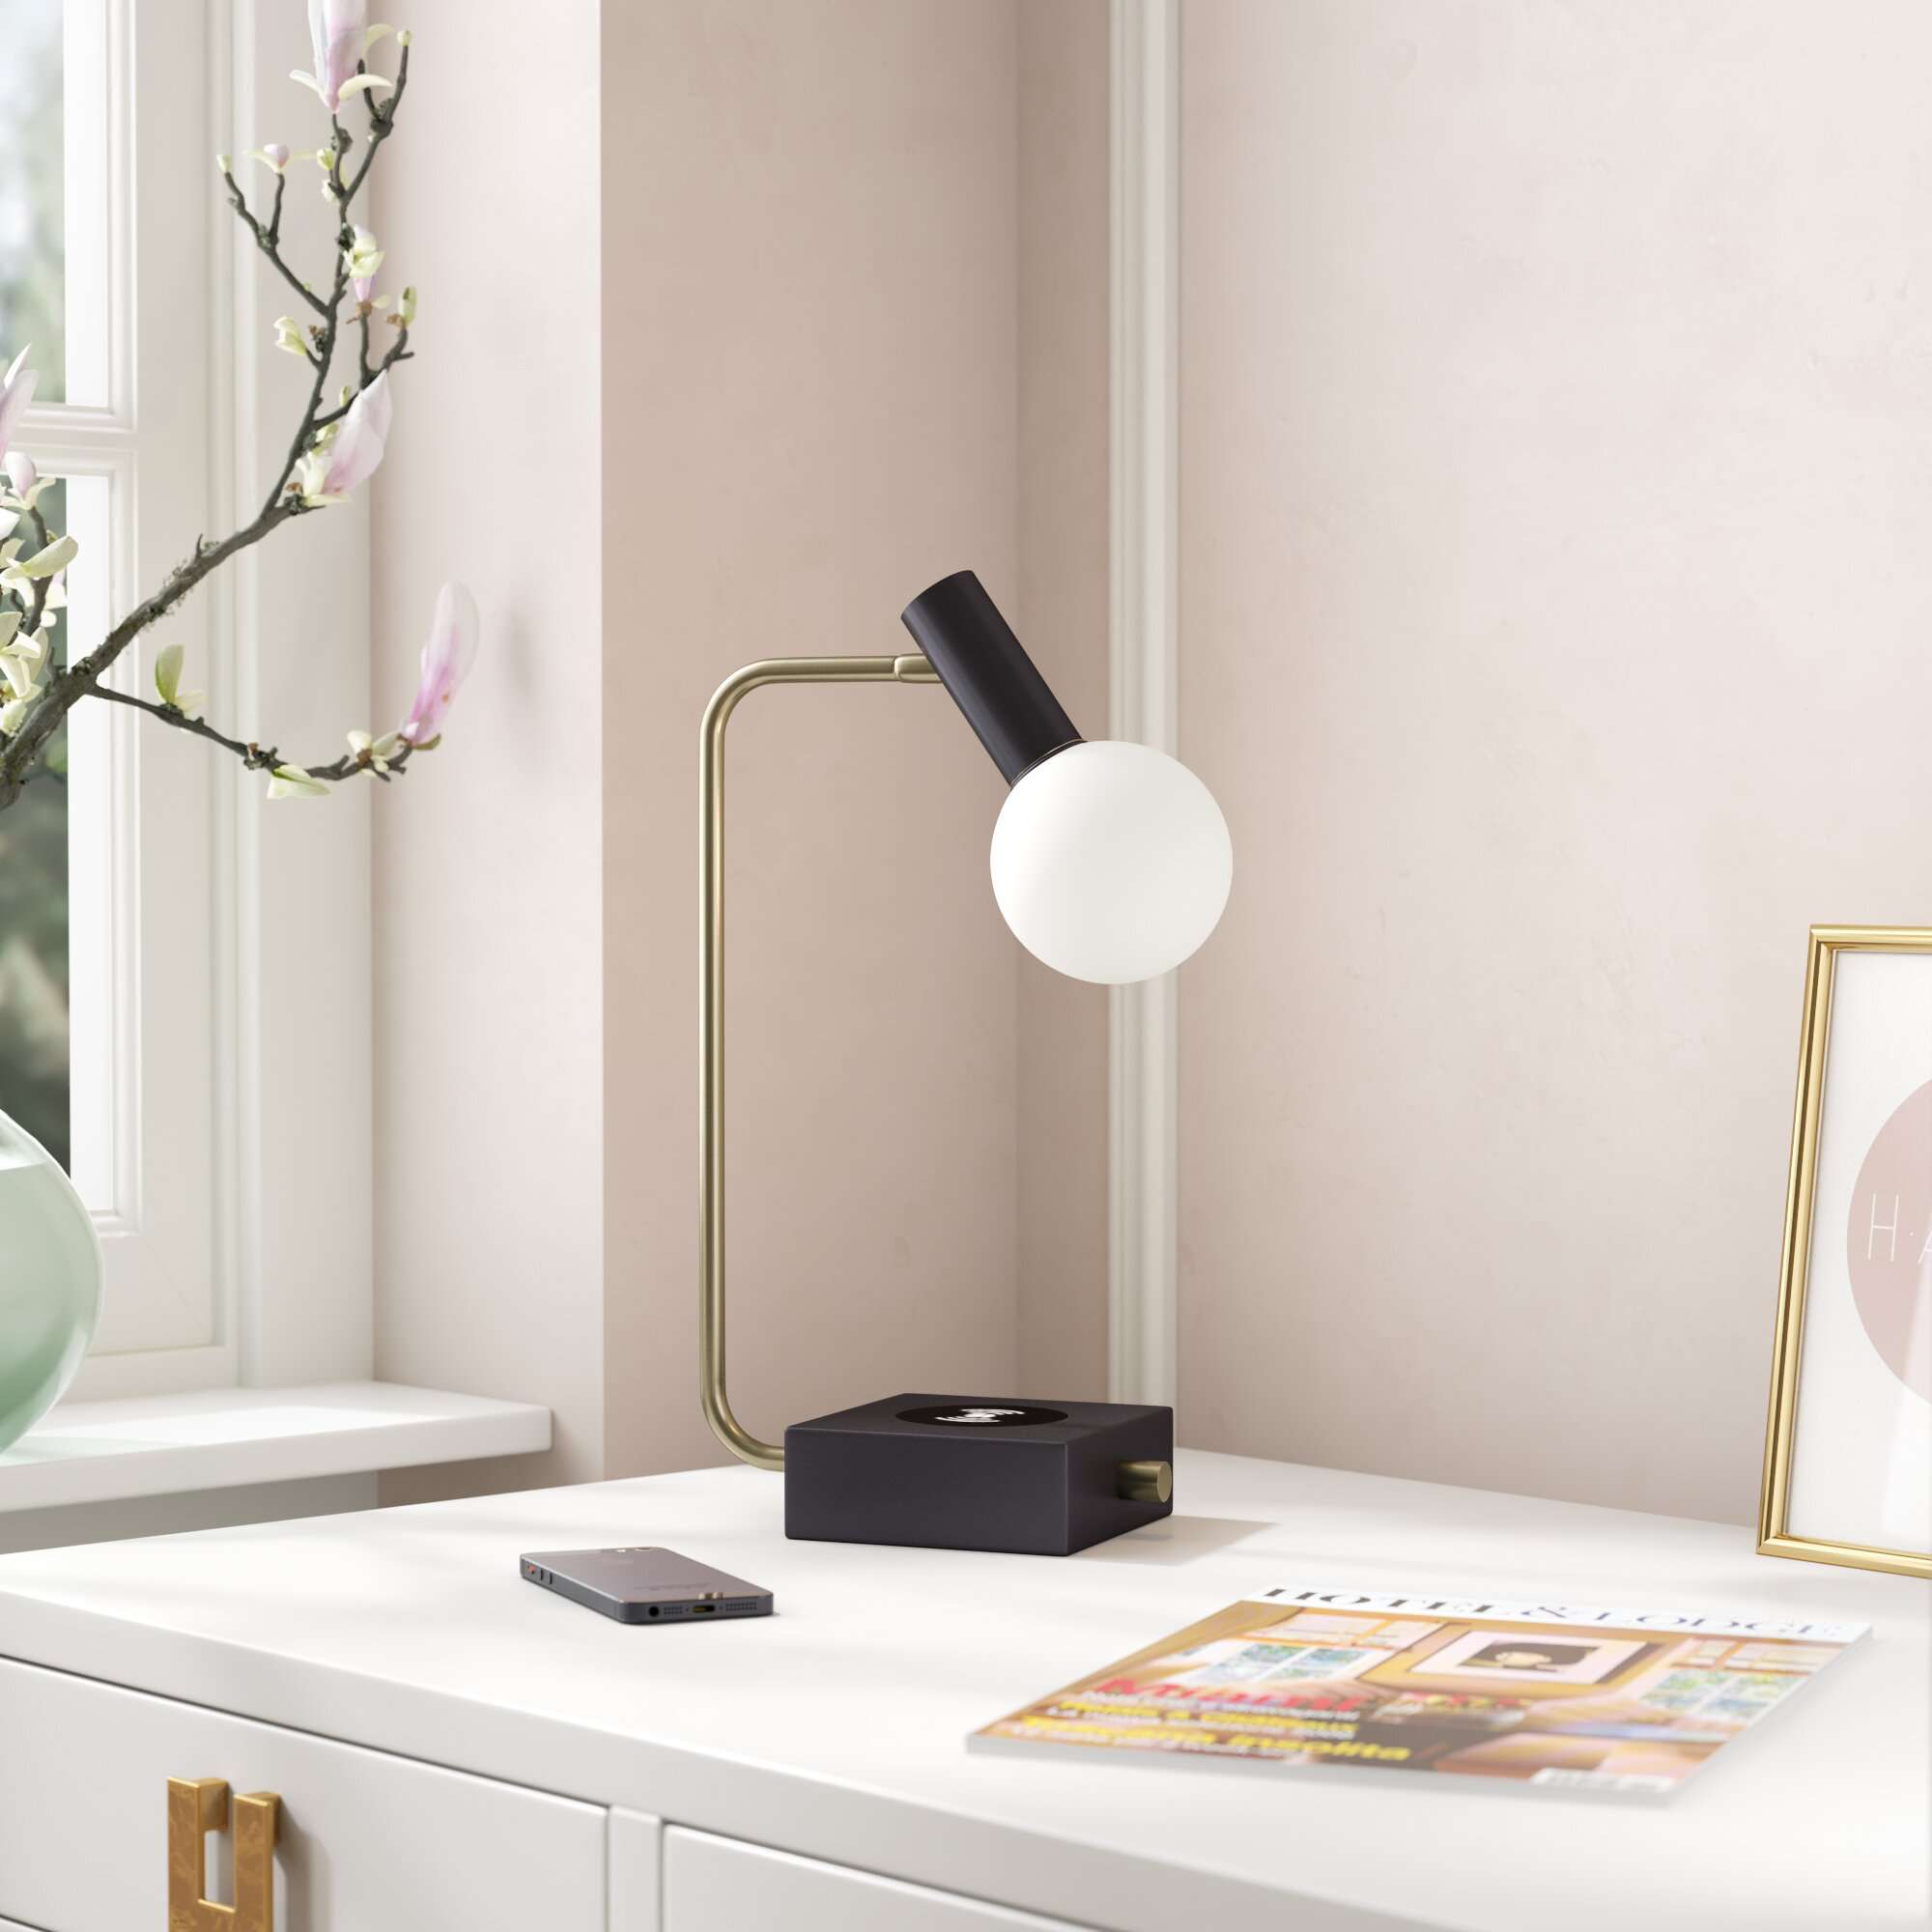 Mack & Milo Adorra Desk Lamp with USB and Outlet